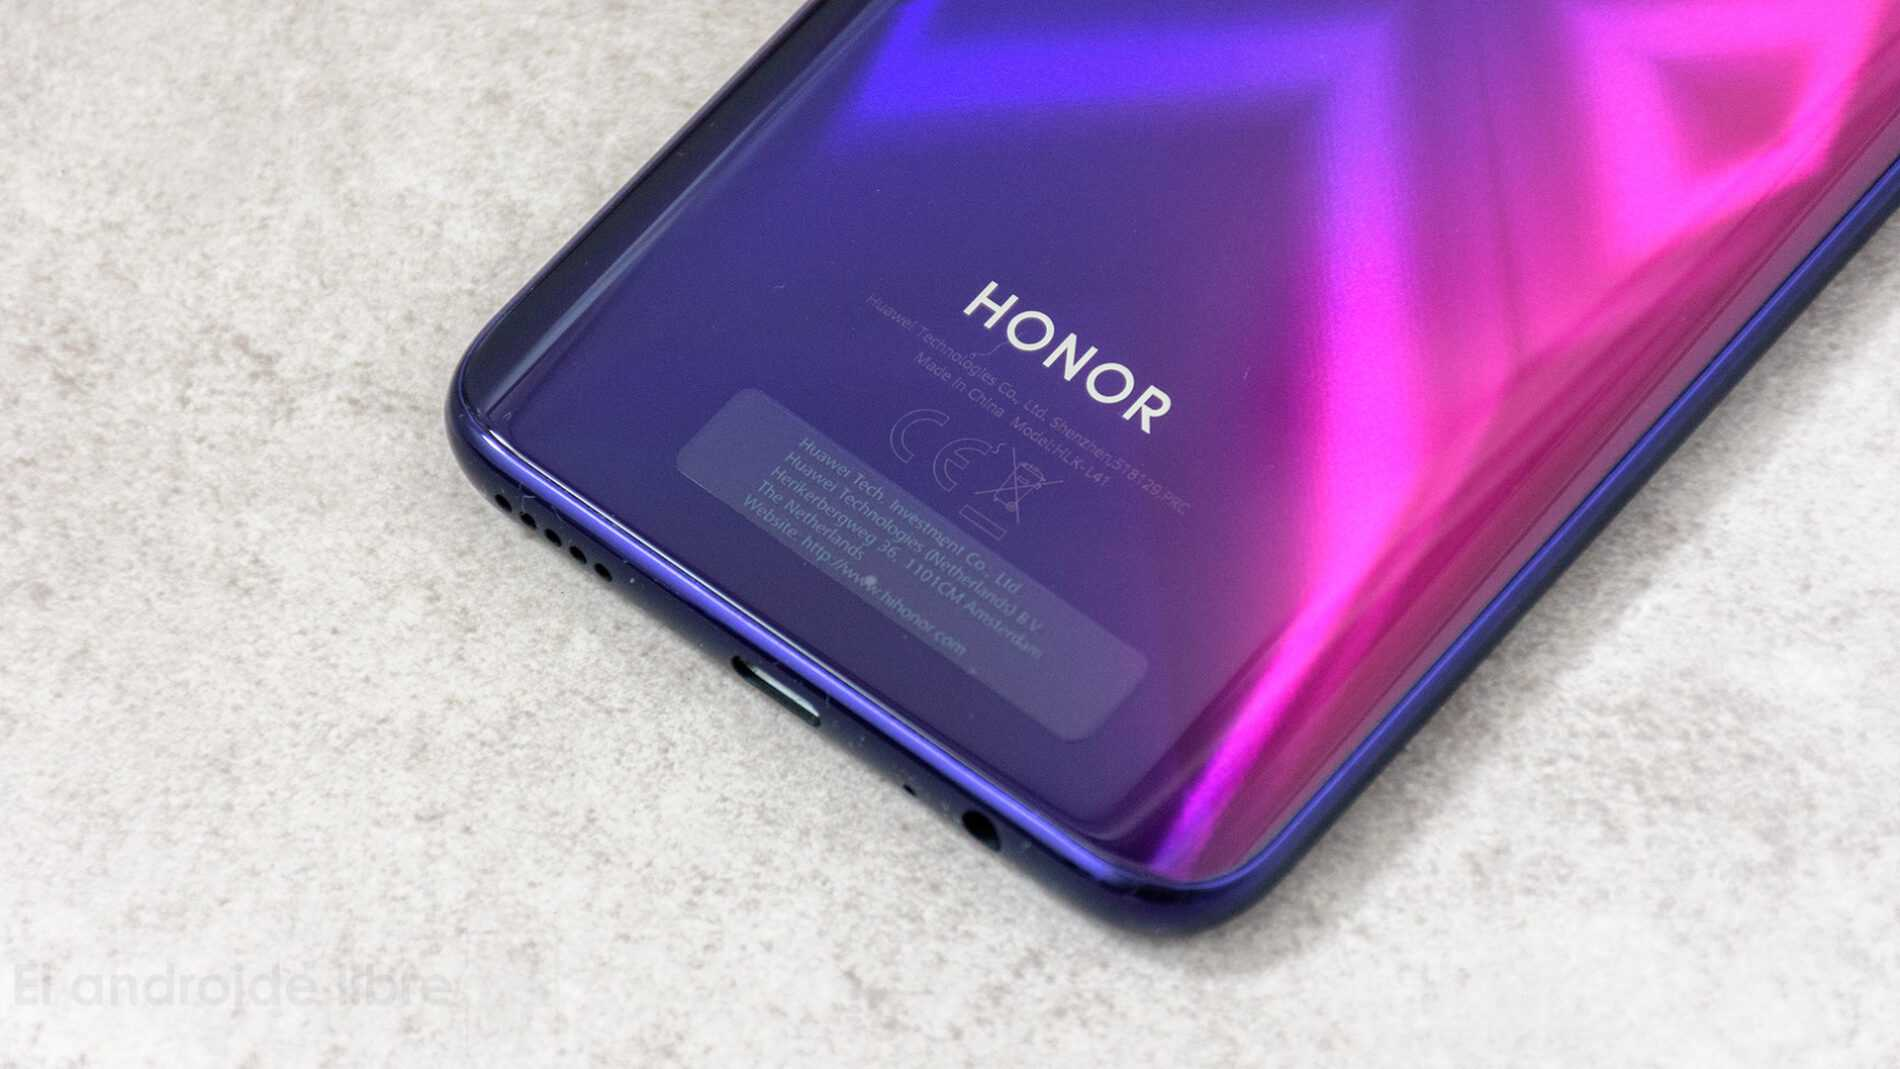 Honor réaffirme son indépendance: accords avec MediaTek, Qualcomm et plus